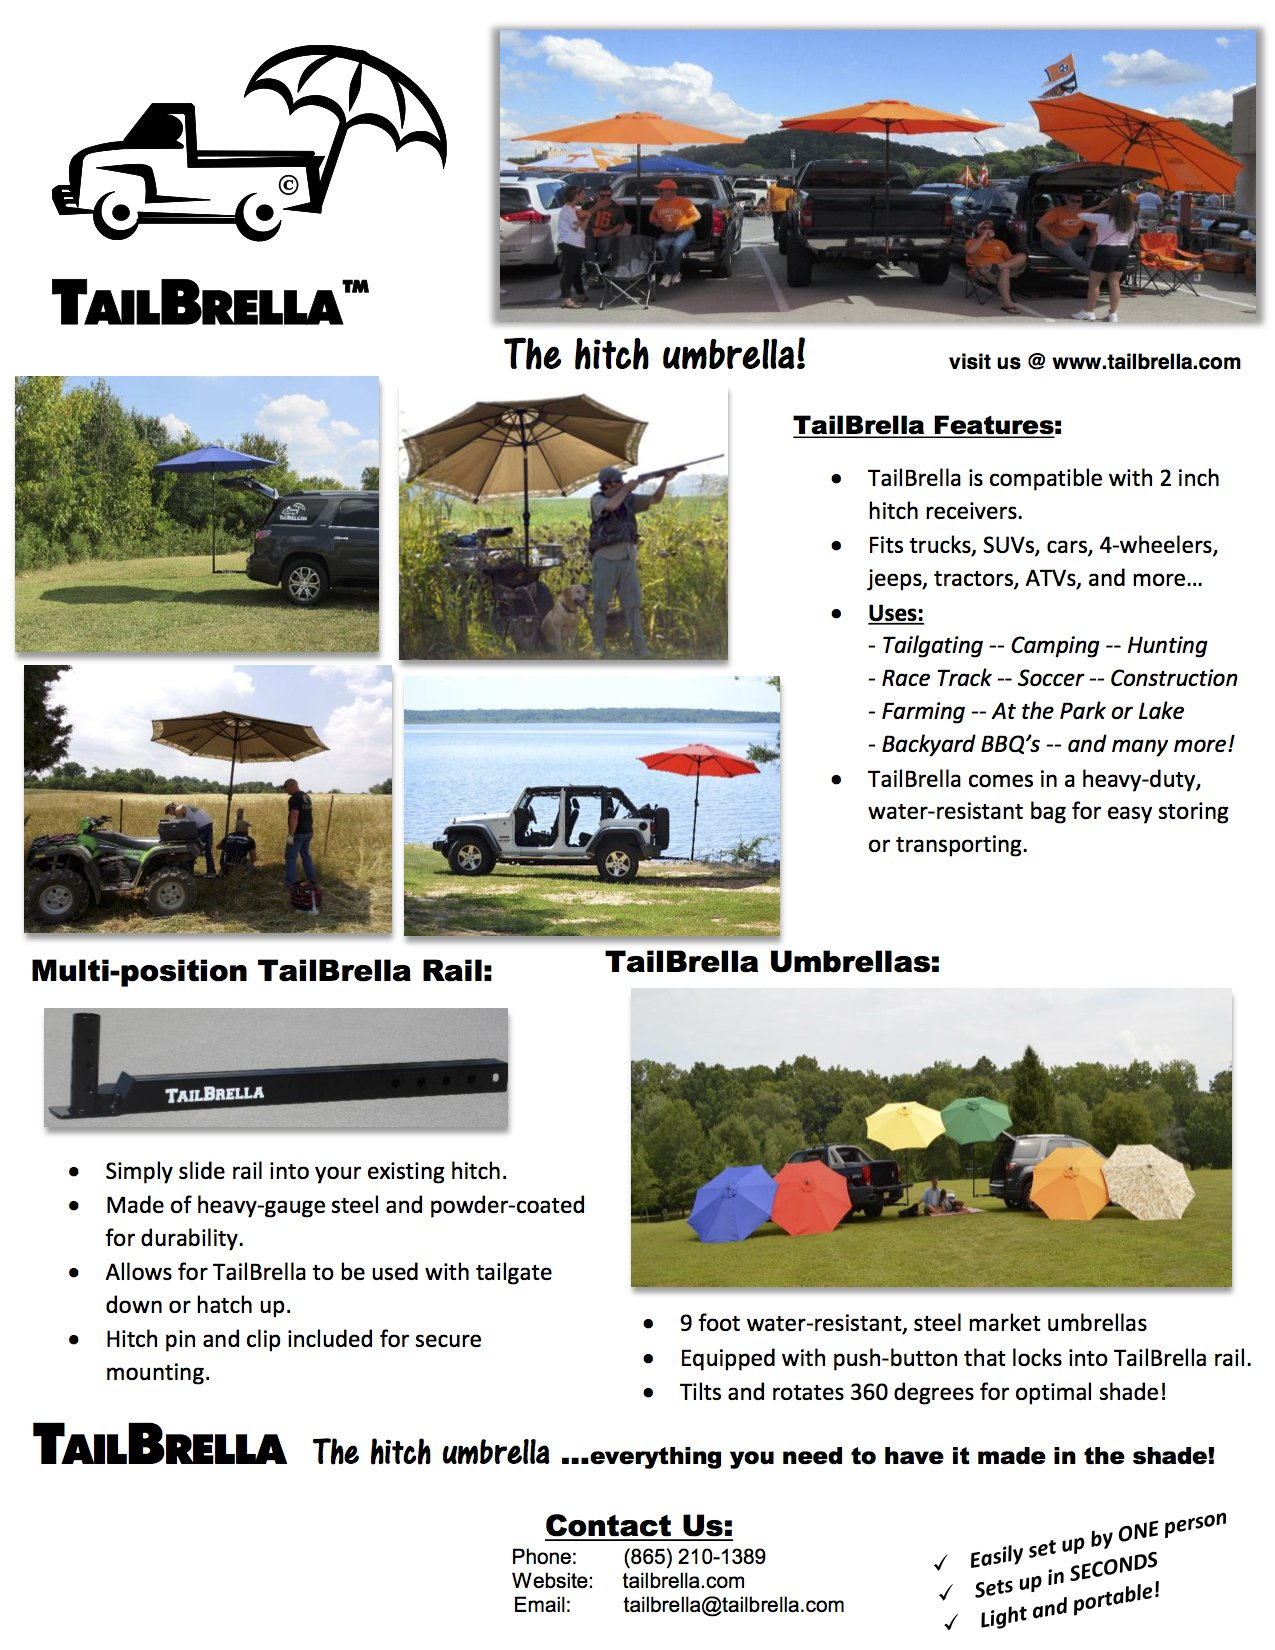 Tailbrella Blue Tailgate Hitch Umbrella Canopy for Truck SUV Tailgater. 9FT Large Water-Resistant Tailgating Tents for Outdoor Camping, Beach, Travel, Hunting. EZ Pop Up Umbrellas for Shade by Tailbrella